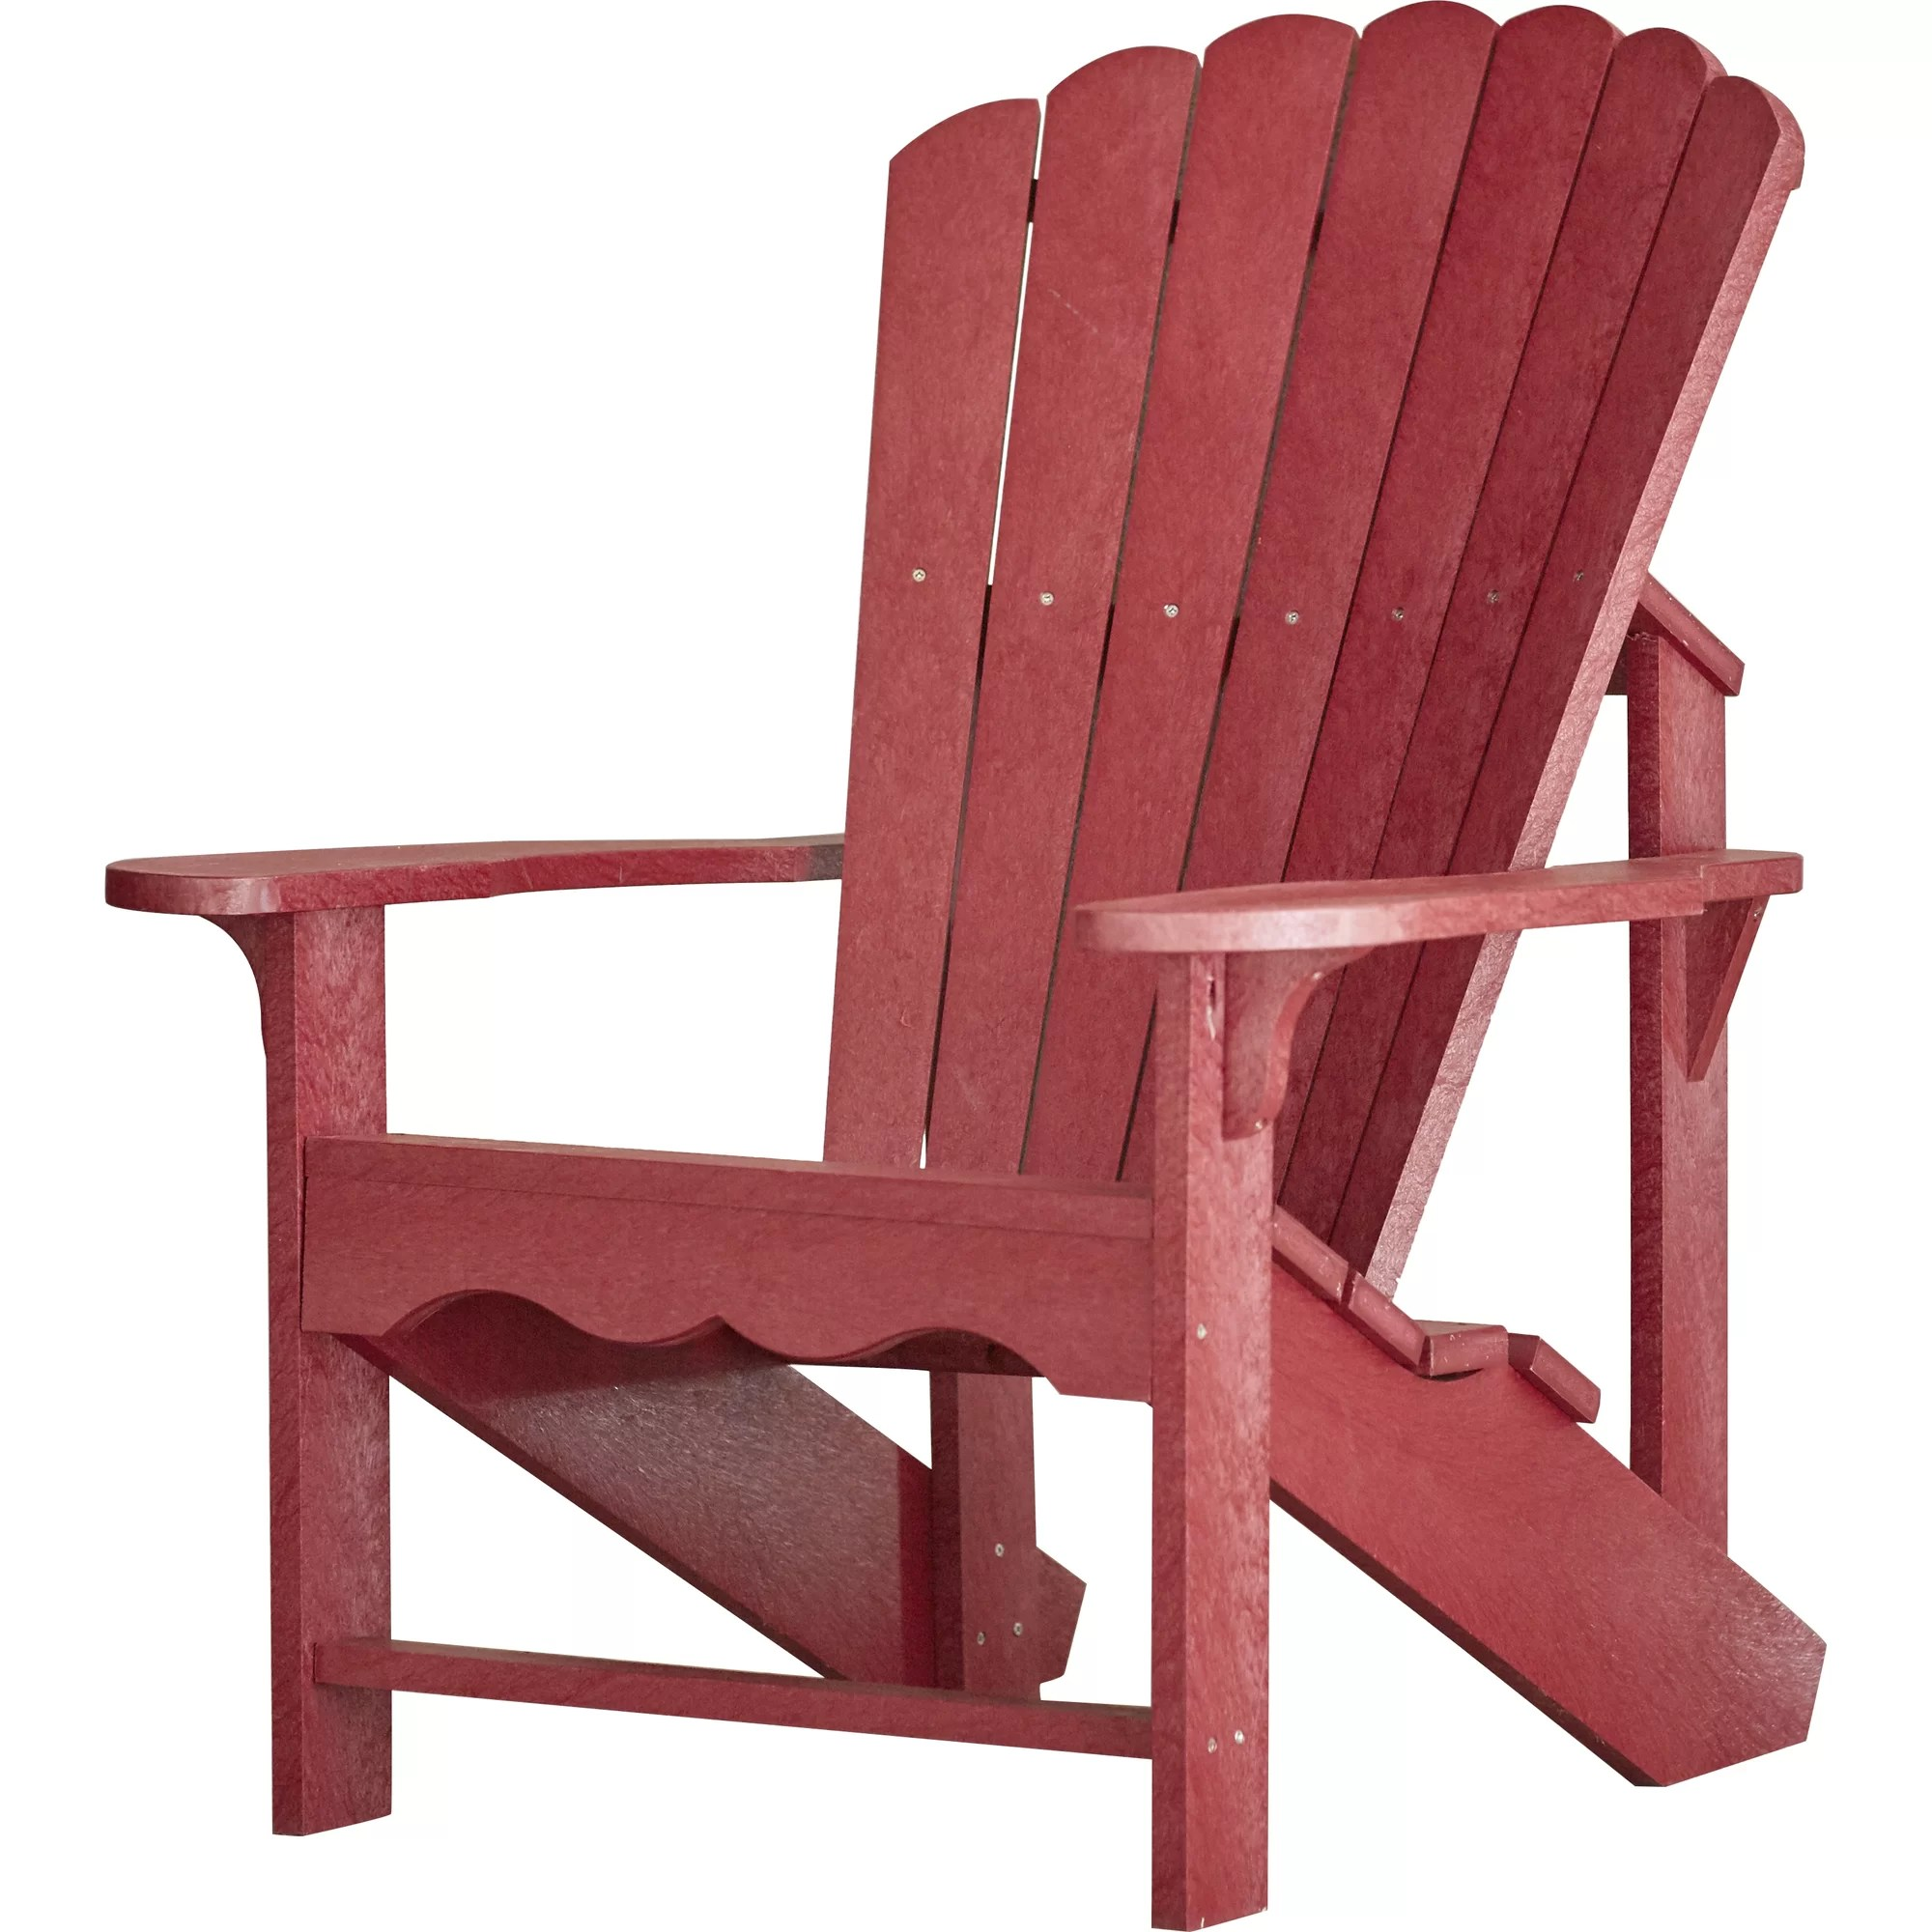 adirondack chair reviews high back patio chairs bay isle home aloa and wayfair